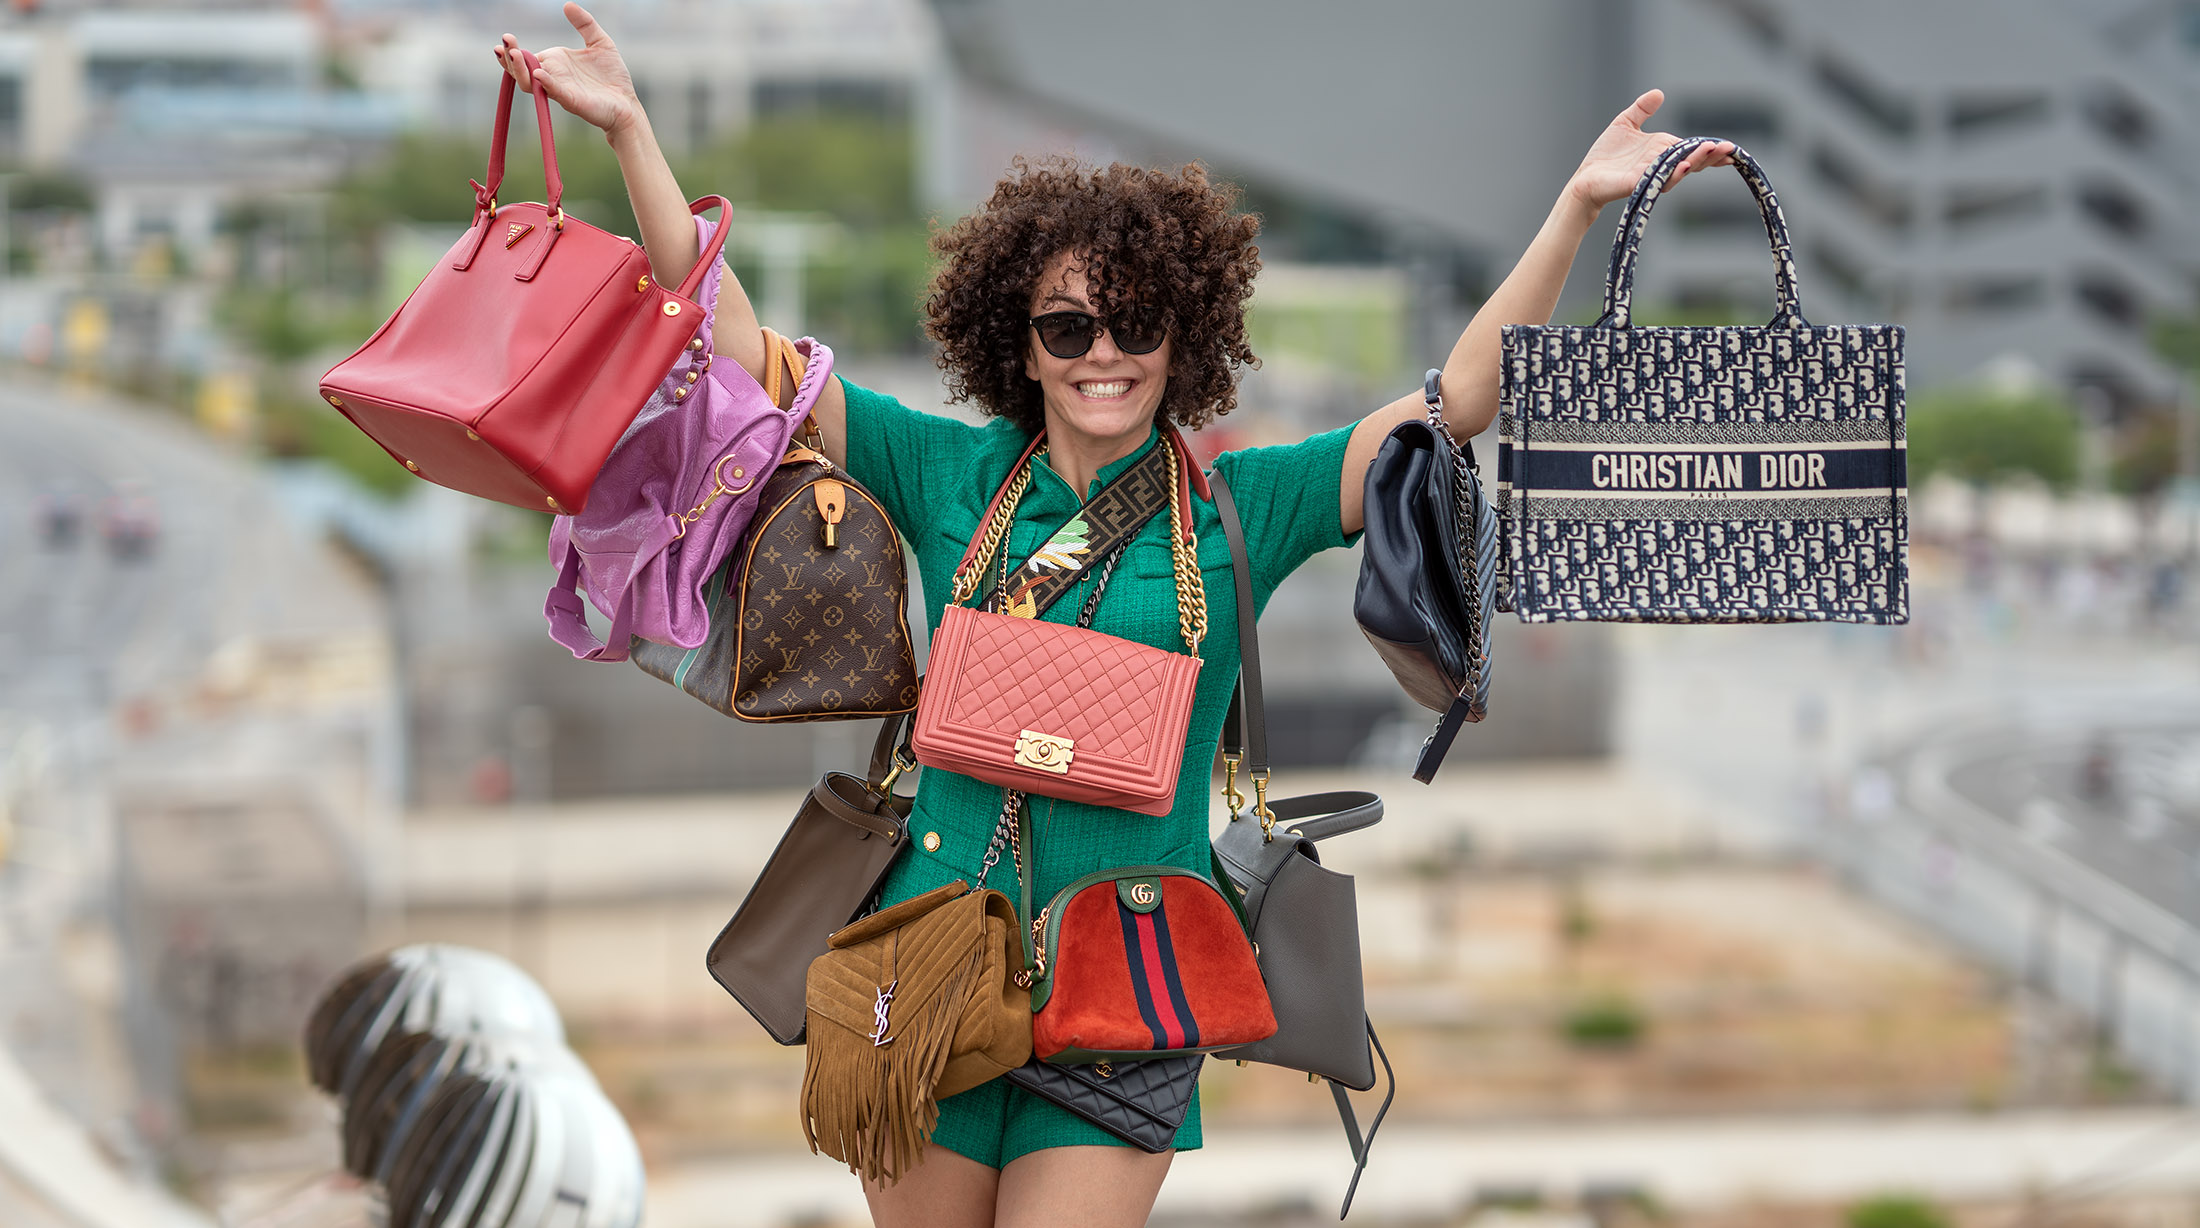 Girl with a lot of handbags